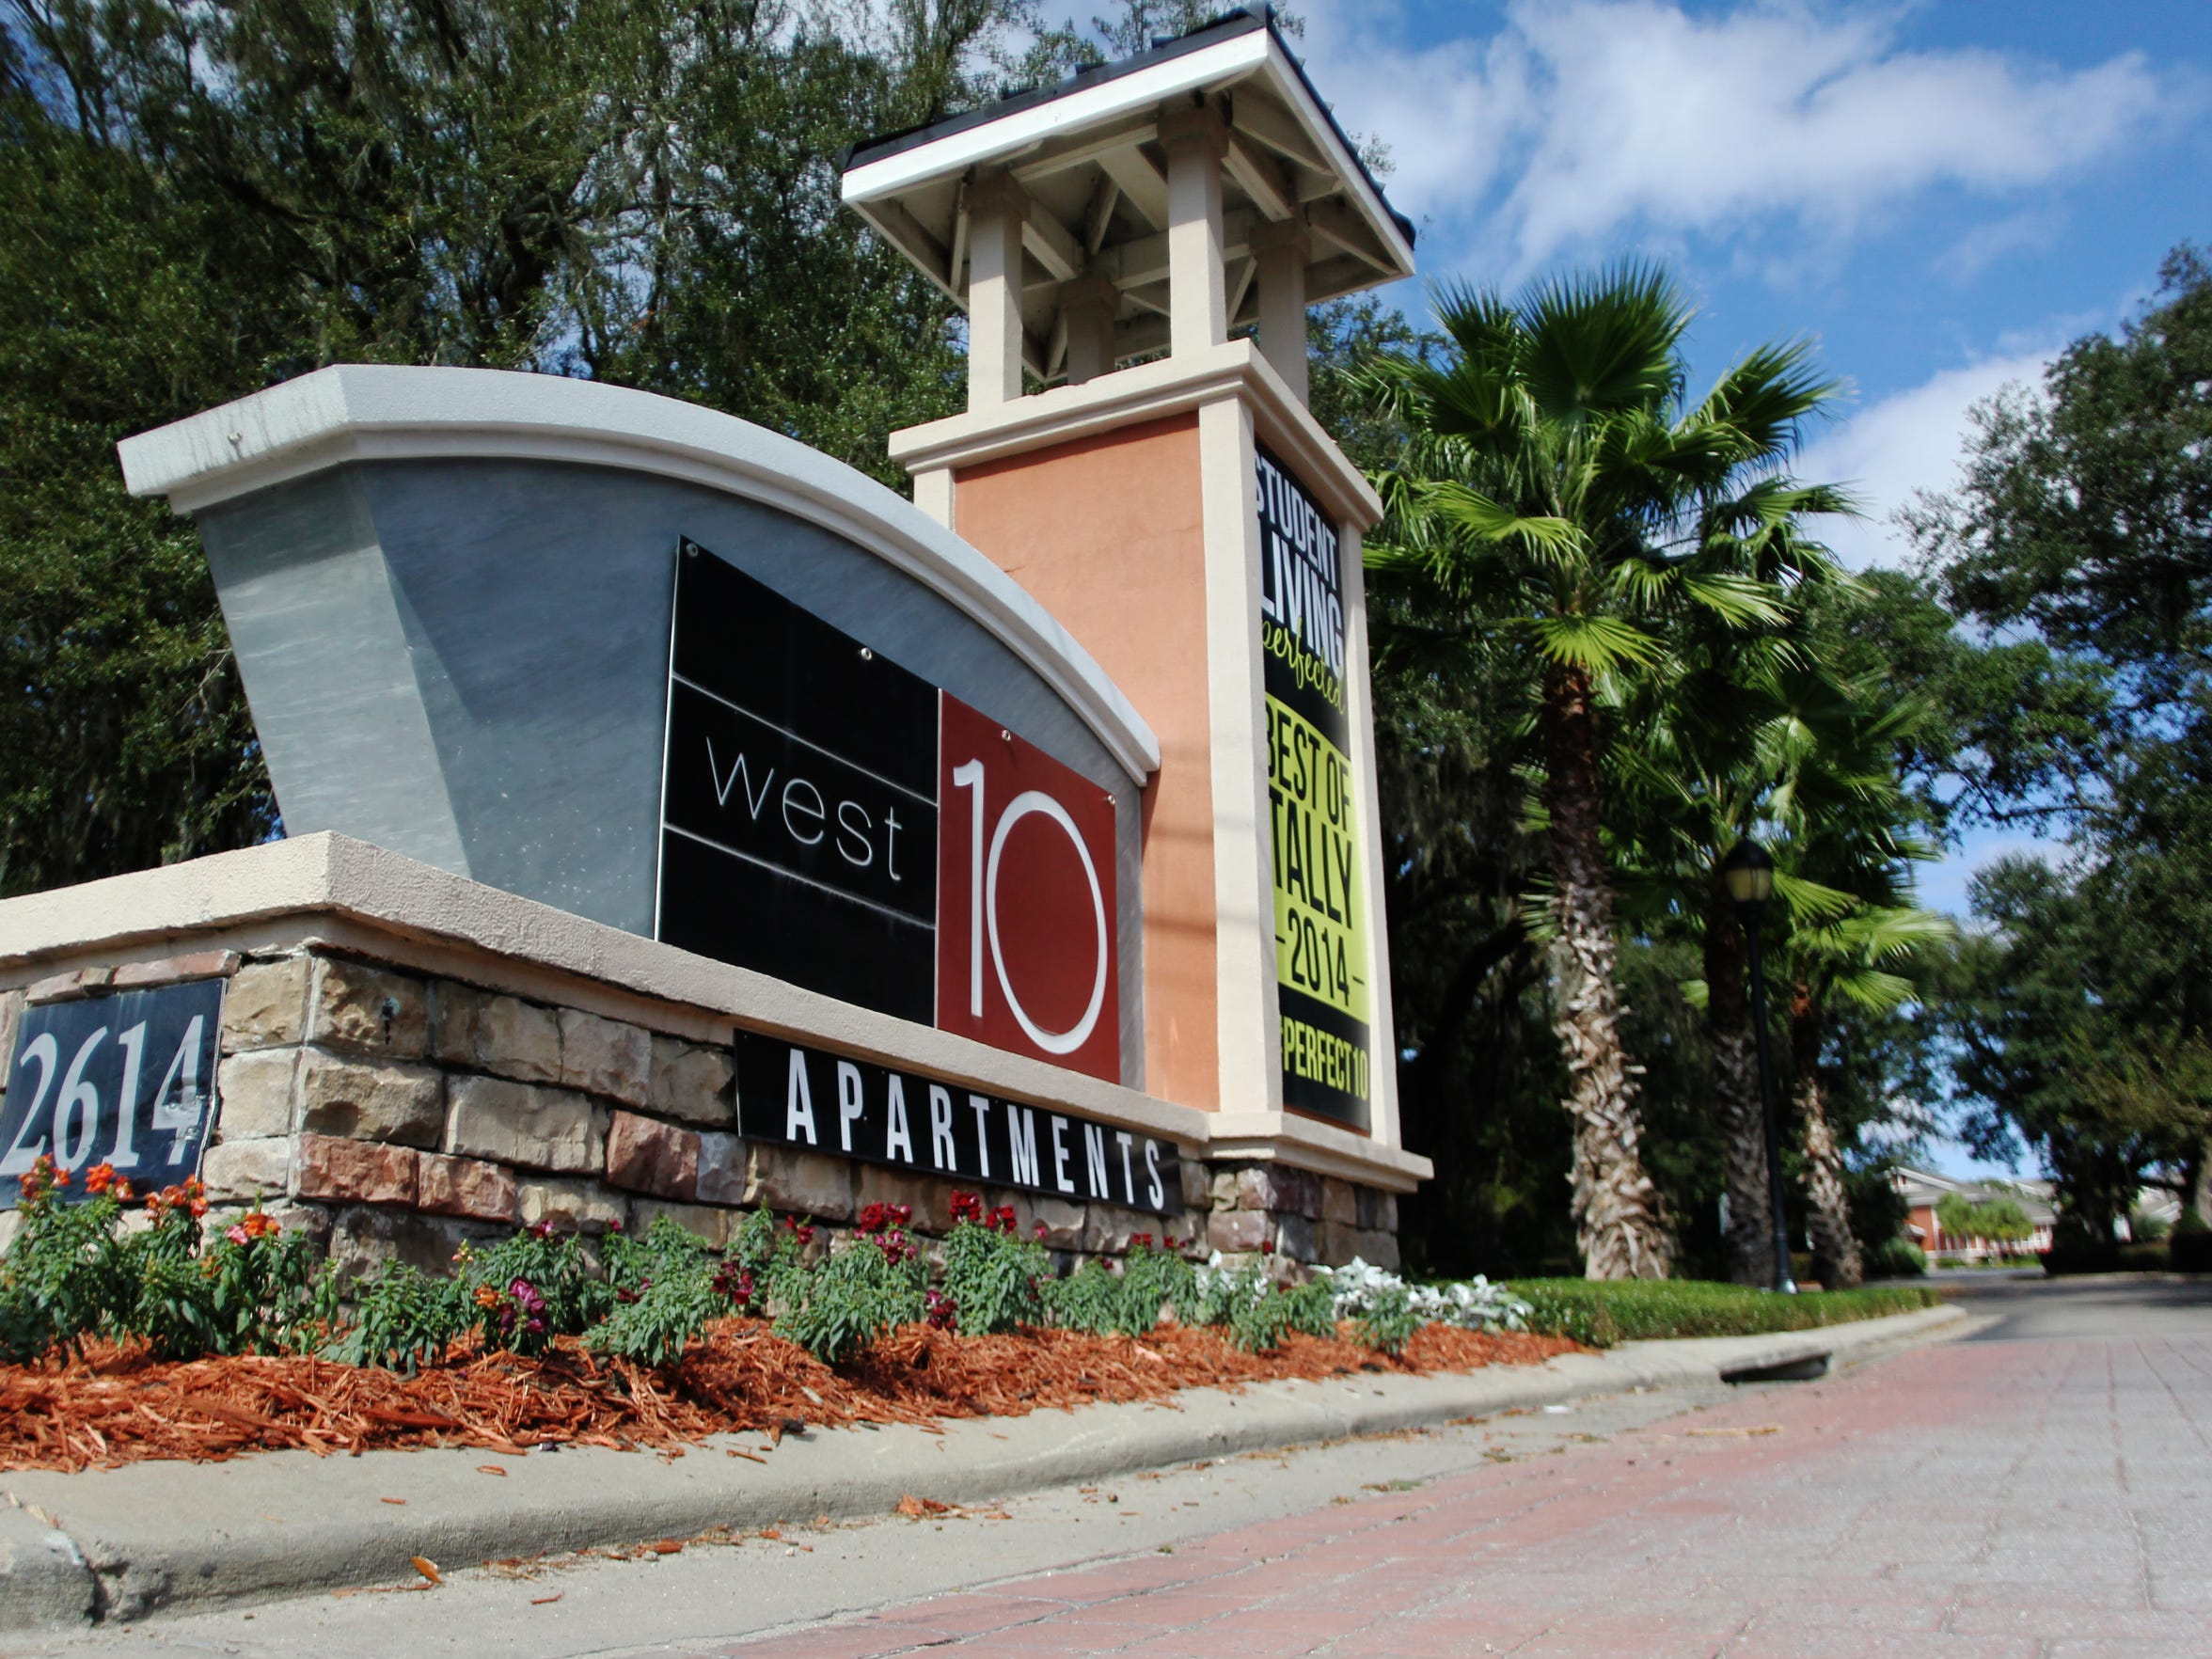 The West 10 apartments on West Tennessee Street received more noise complaints the last two years than any other apartment complex in Tallahassee.